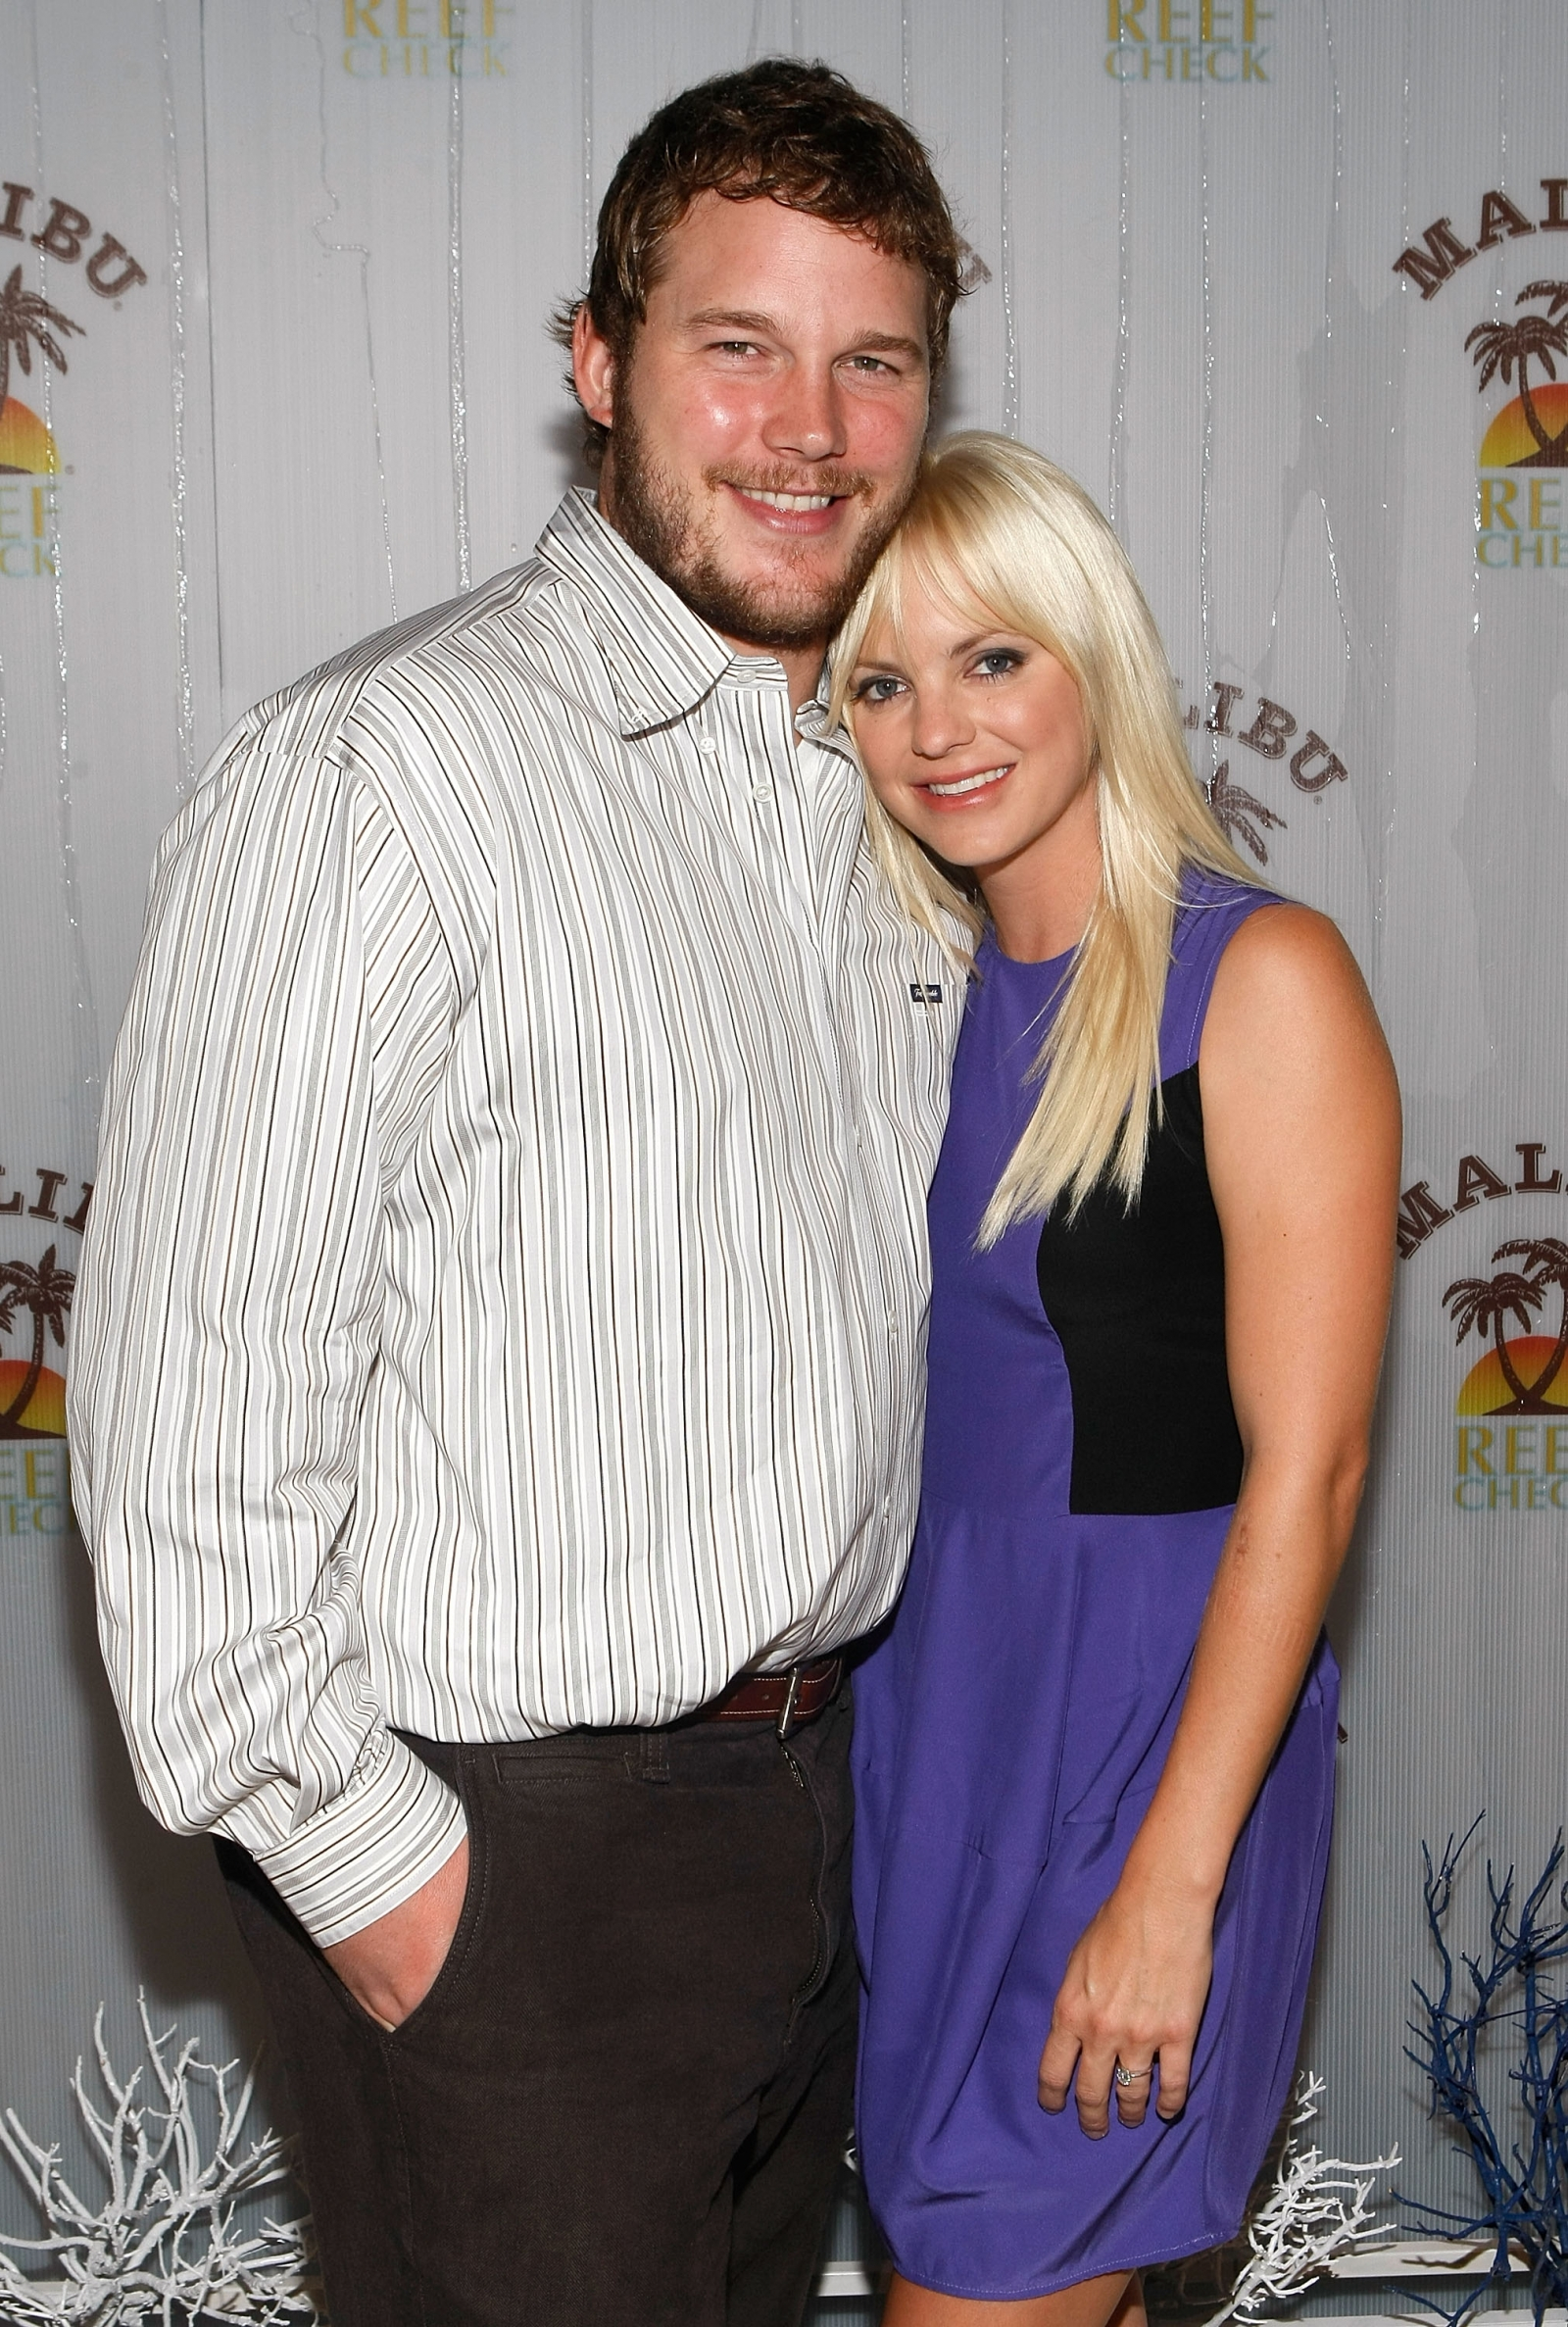 Anna Faris Has A New Man In Her Life Following Split From